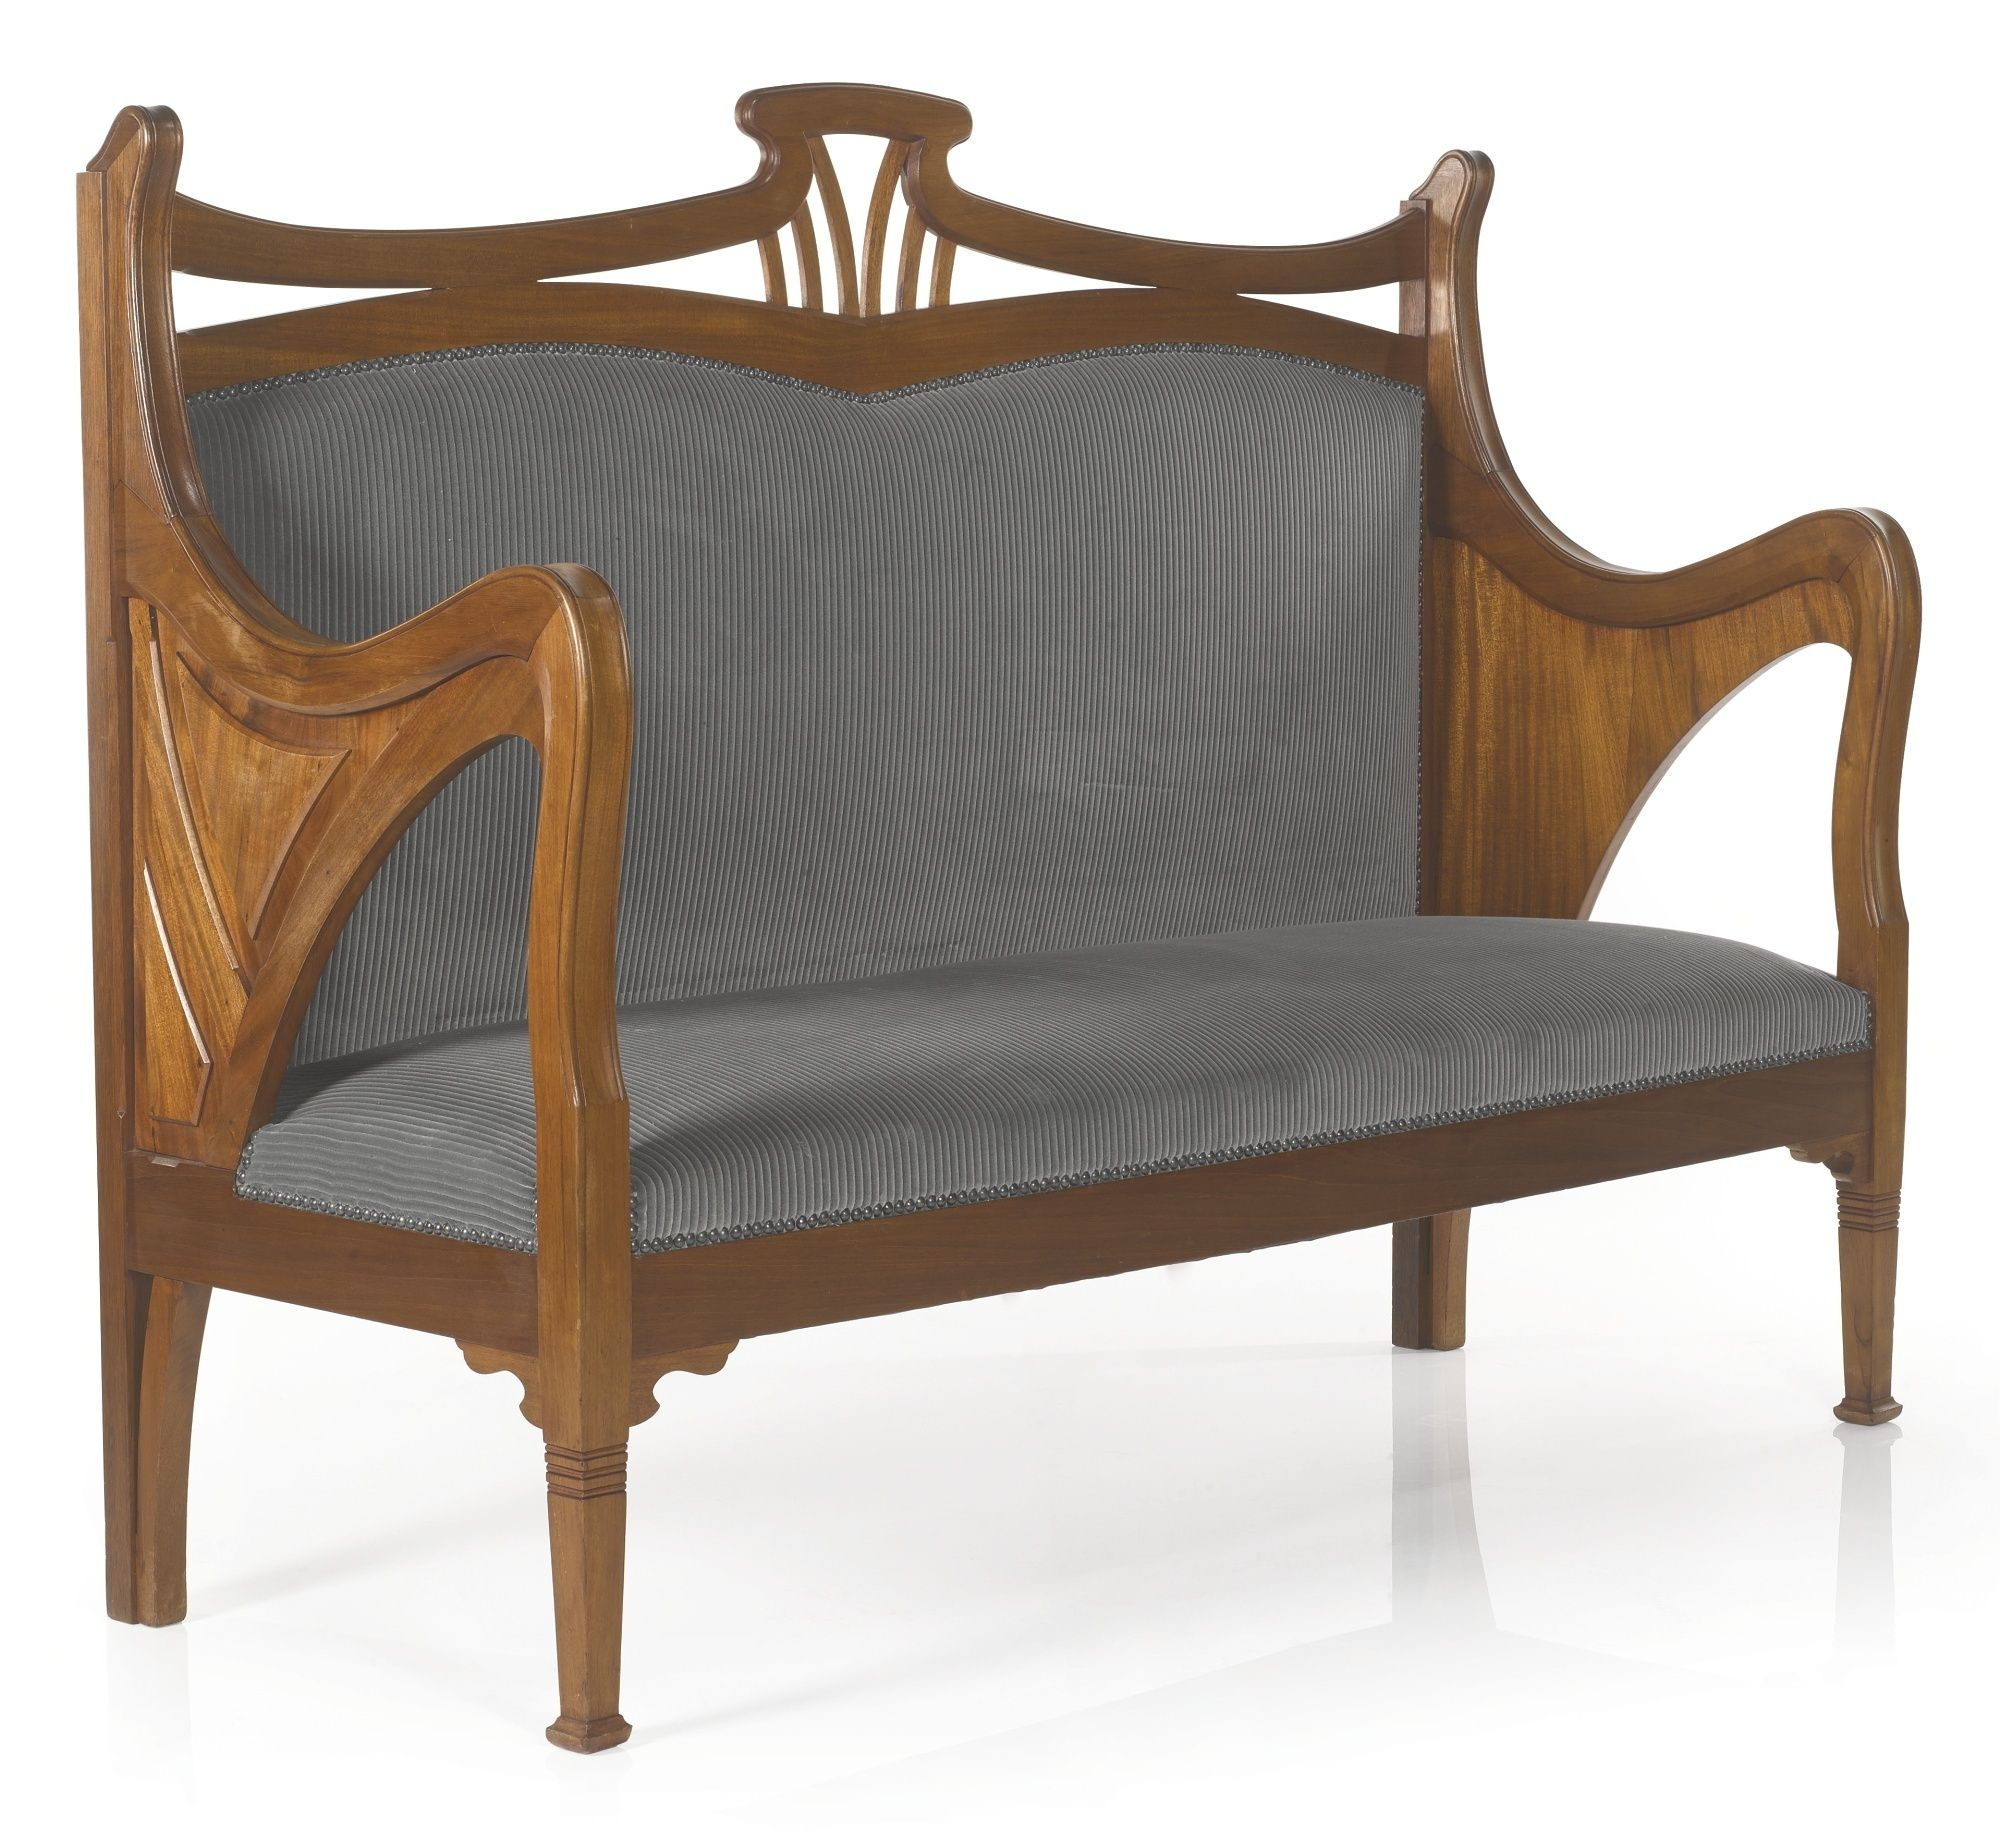 modern art nouveau furniture. 18501950 Design Masterpieces From The Polo Collection - View Auction Details, Bid, Buy And Collect Various Artworks At Sothebys Art House. Modern Nouveau Furniture R